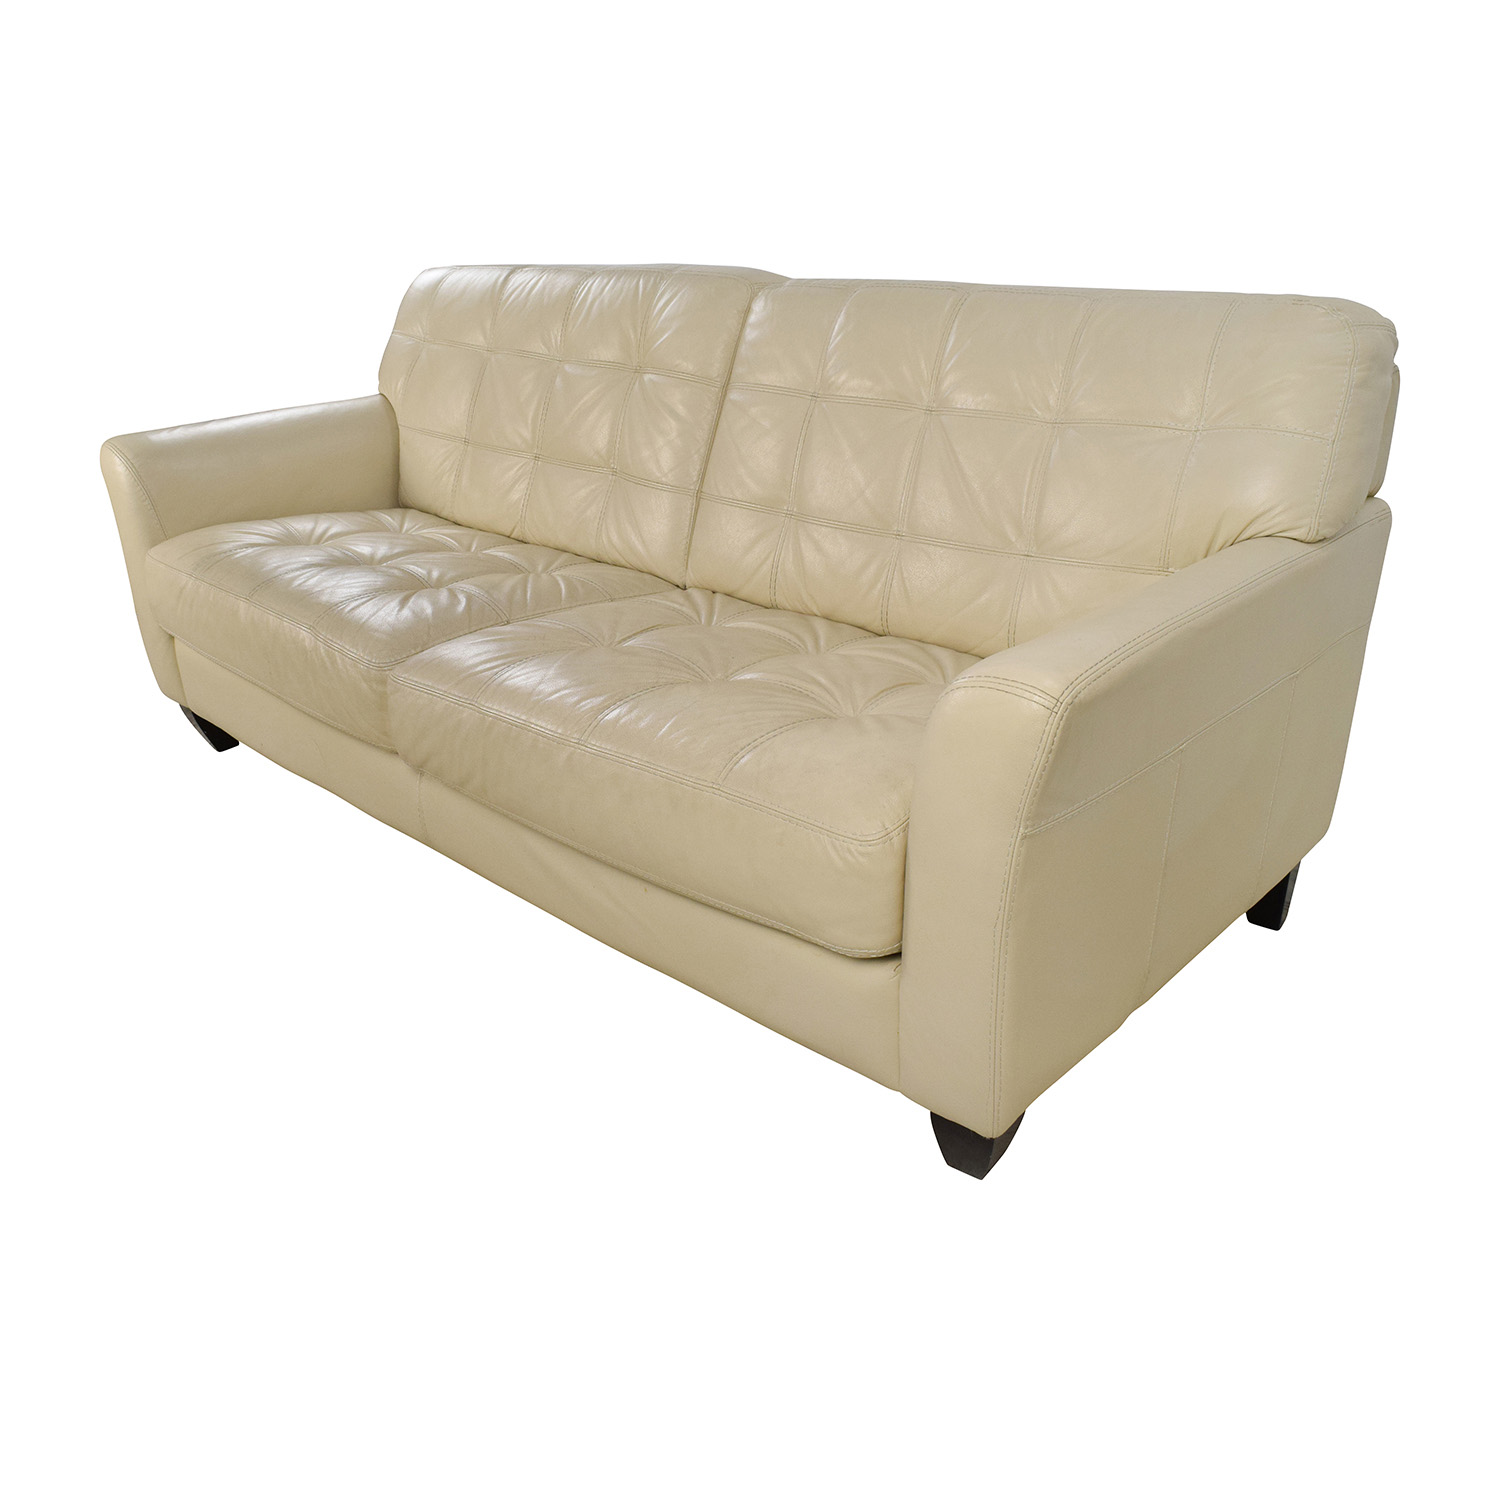 68 Off Macy S Macy S Milan White Leather Couch Sofas